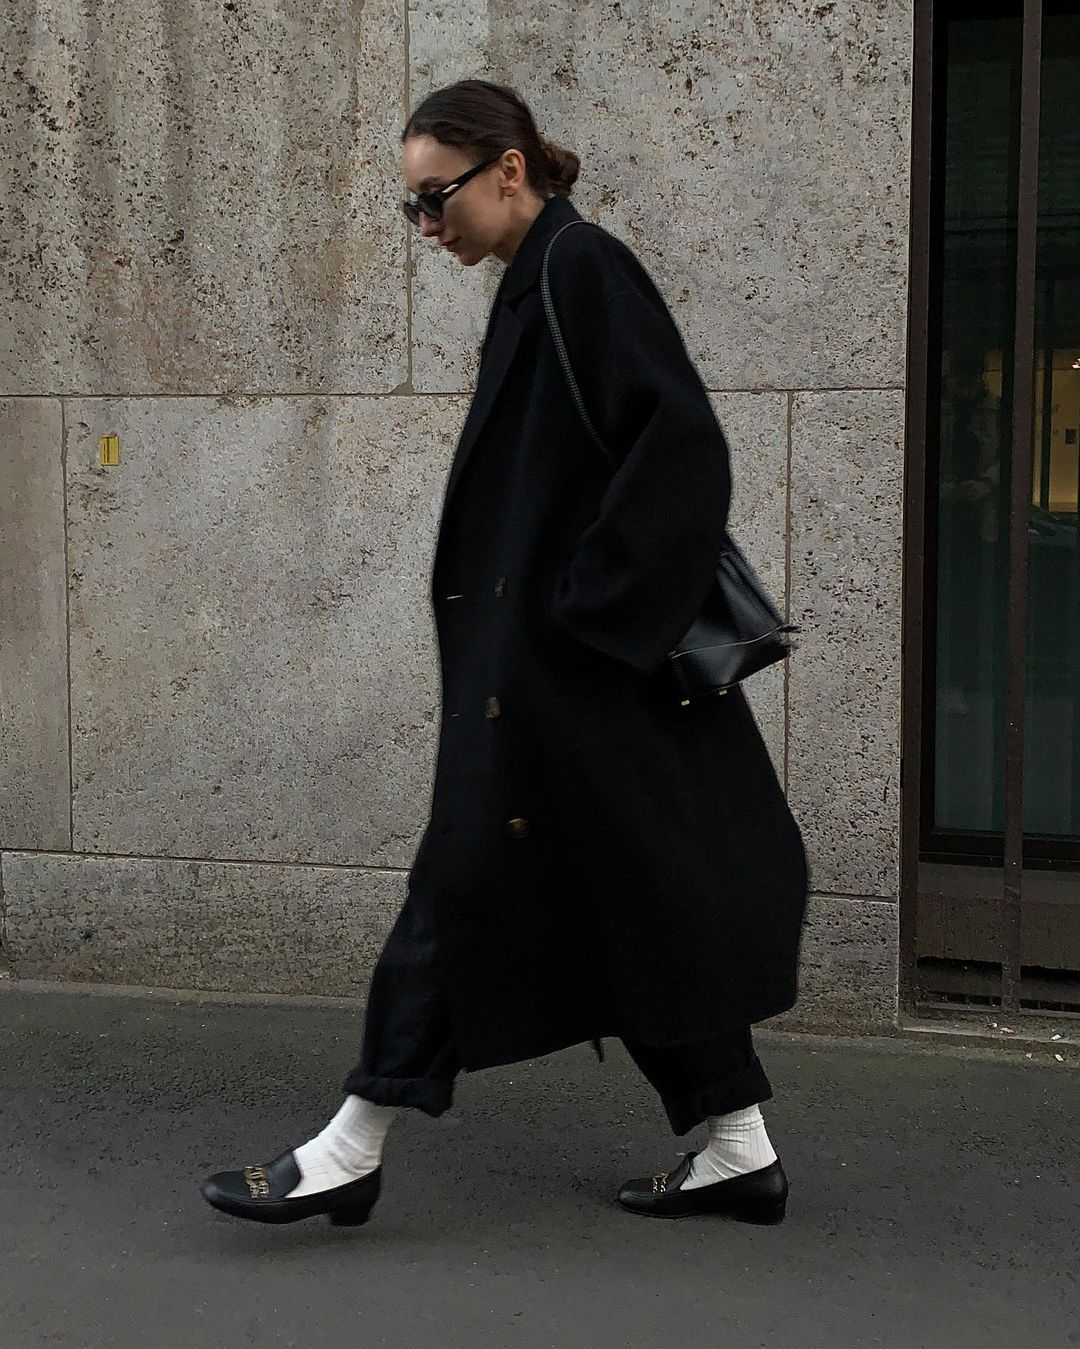 beatrice-gutu-chanel-vinatge-loafers-instagram